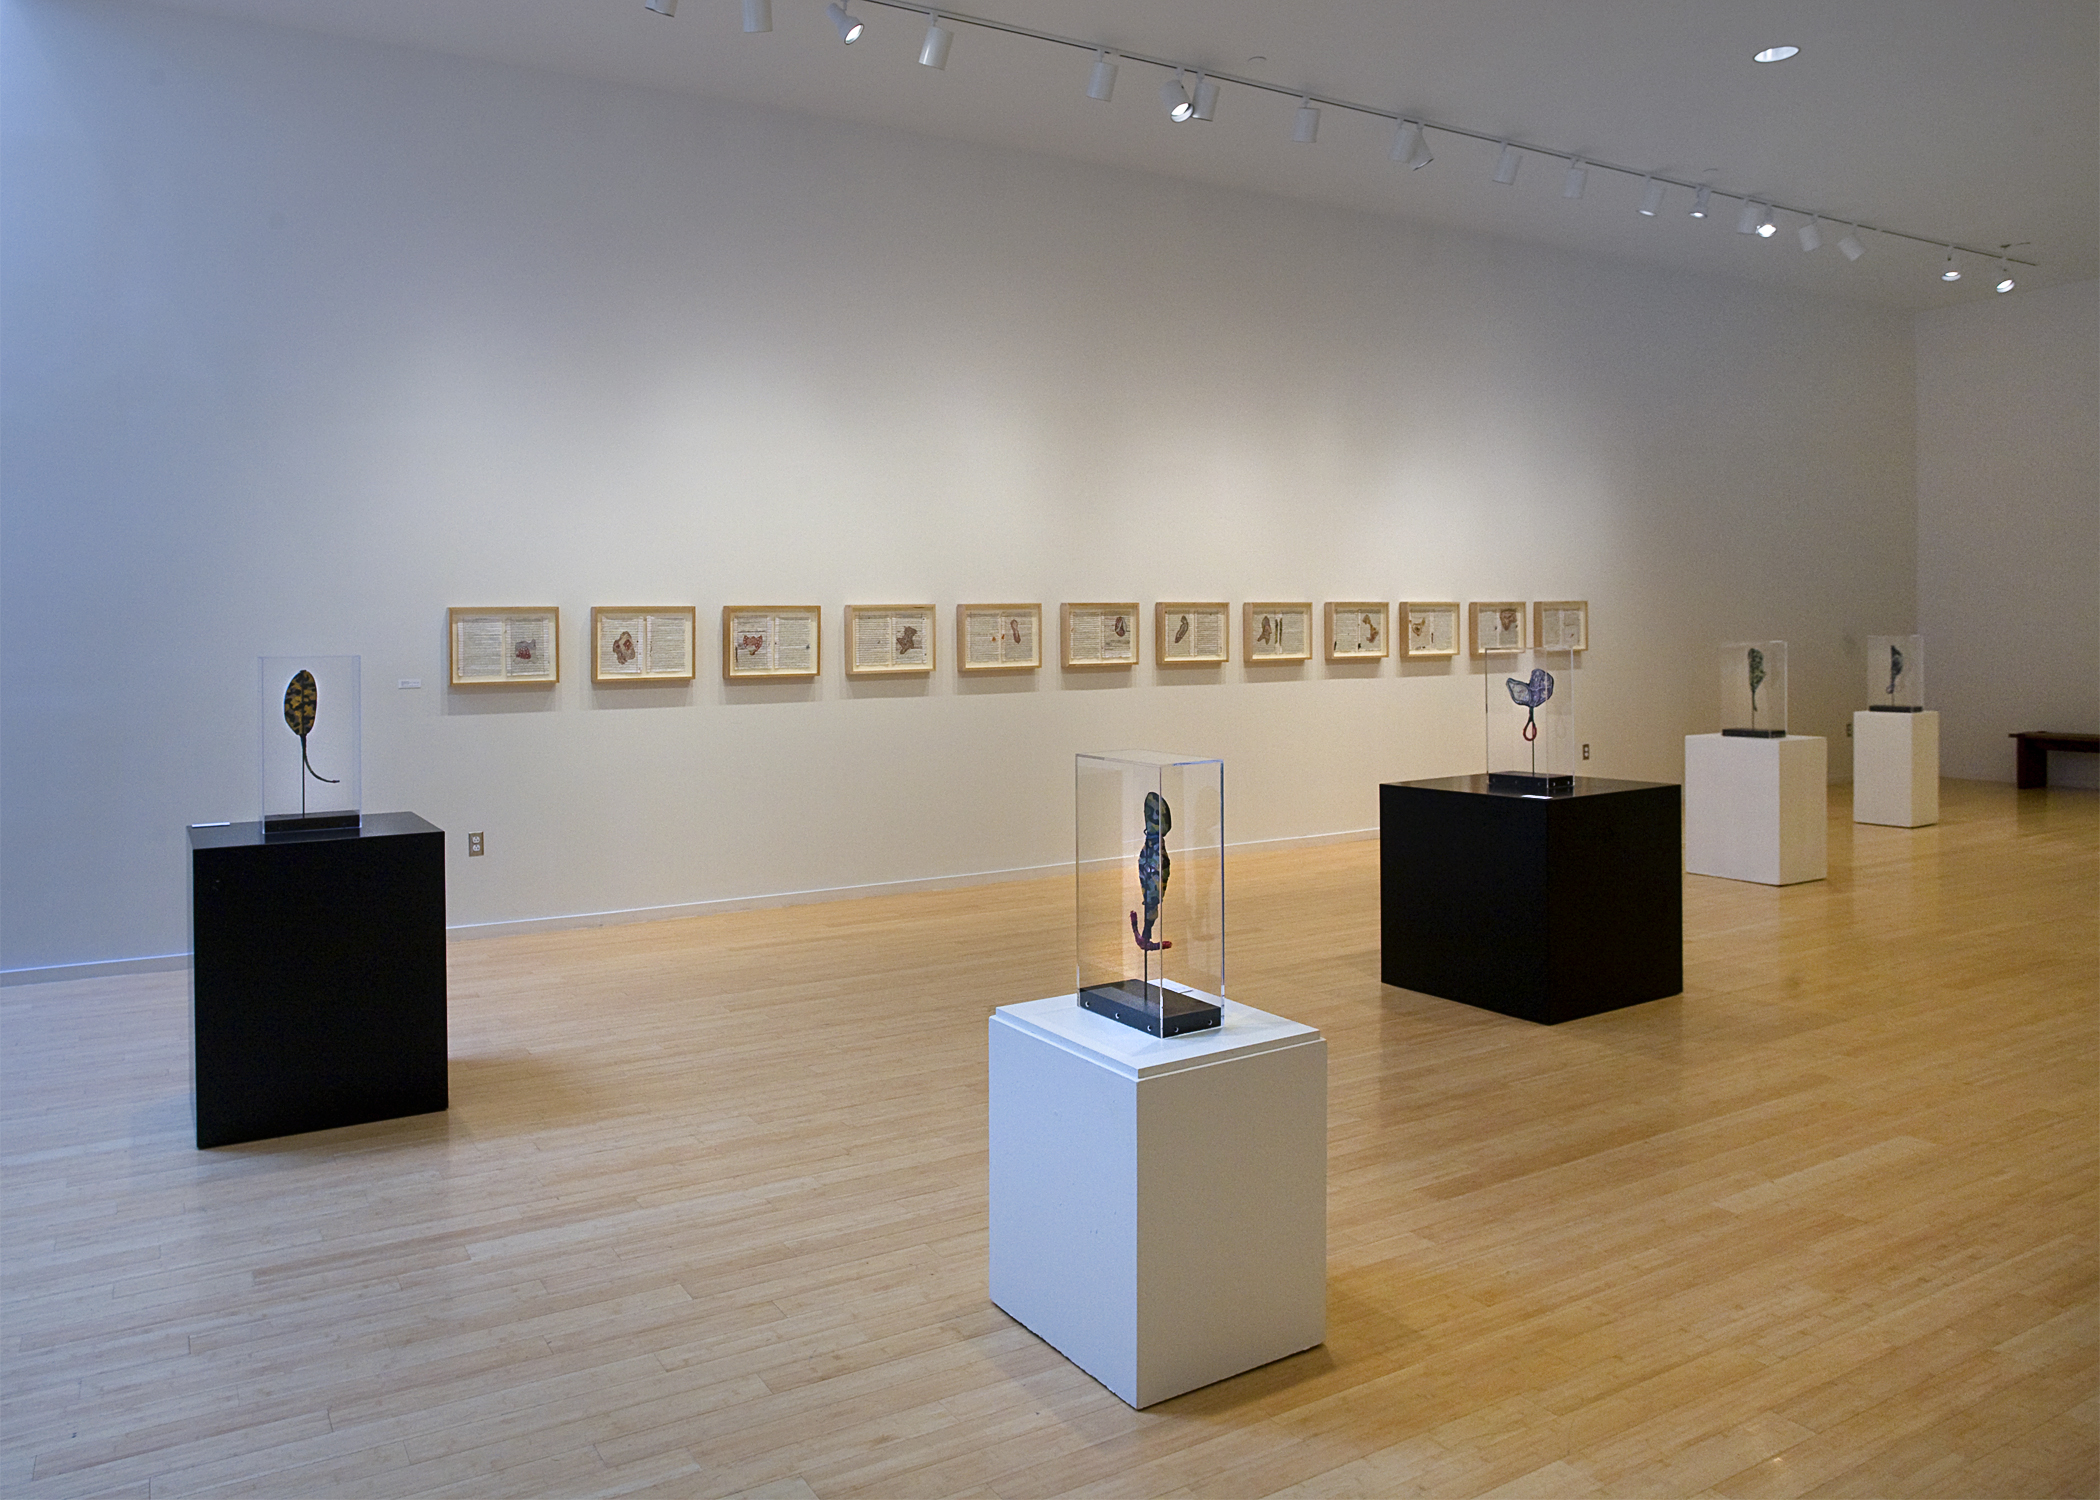 Prayer Paddles , Installation View, Lawrence Art Center, Lawrence, Kansas, 2011.